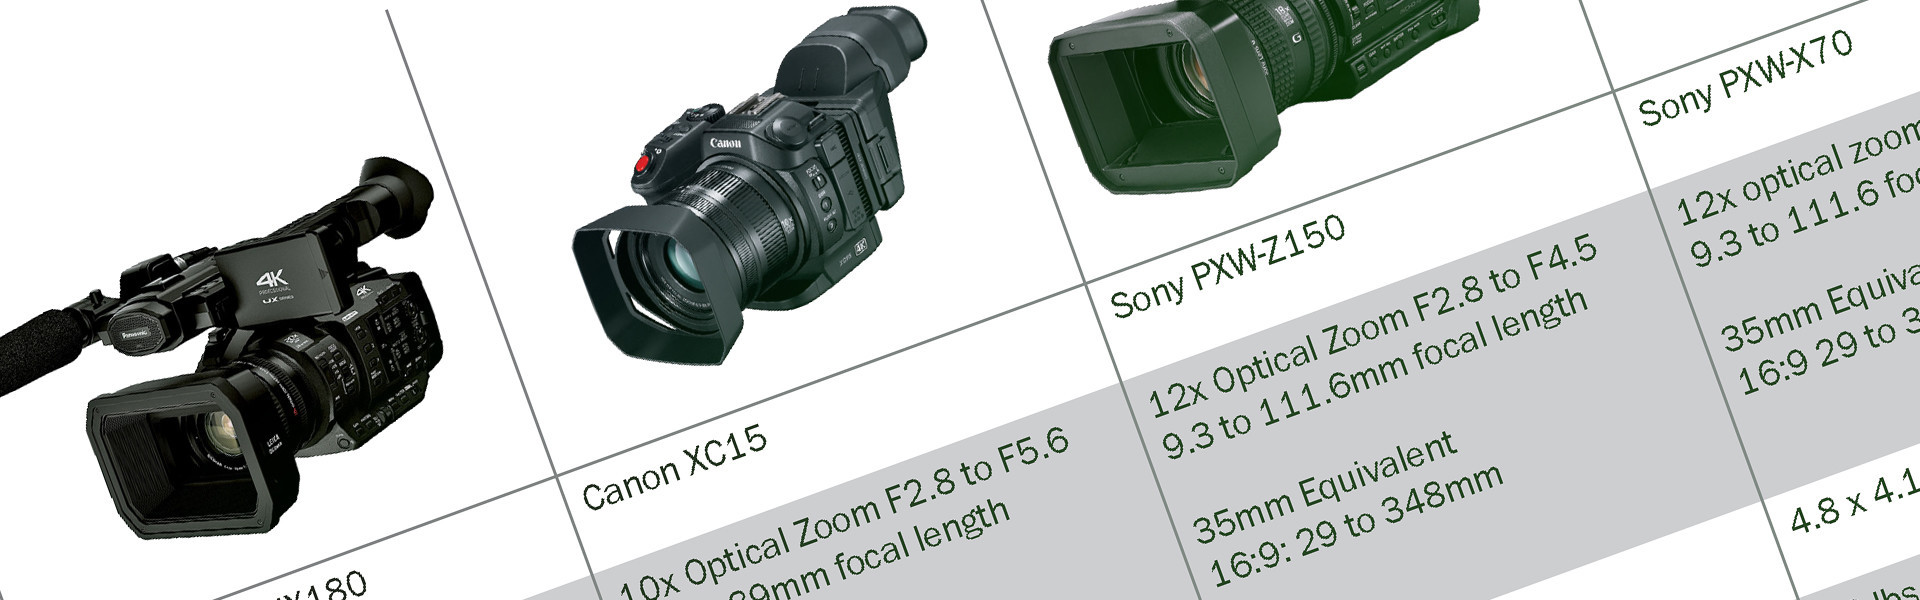 Header image for article Handheld Cinema Camcorder Comparison Chart